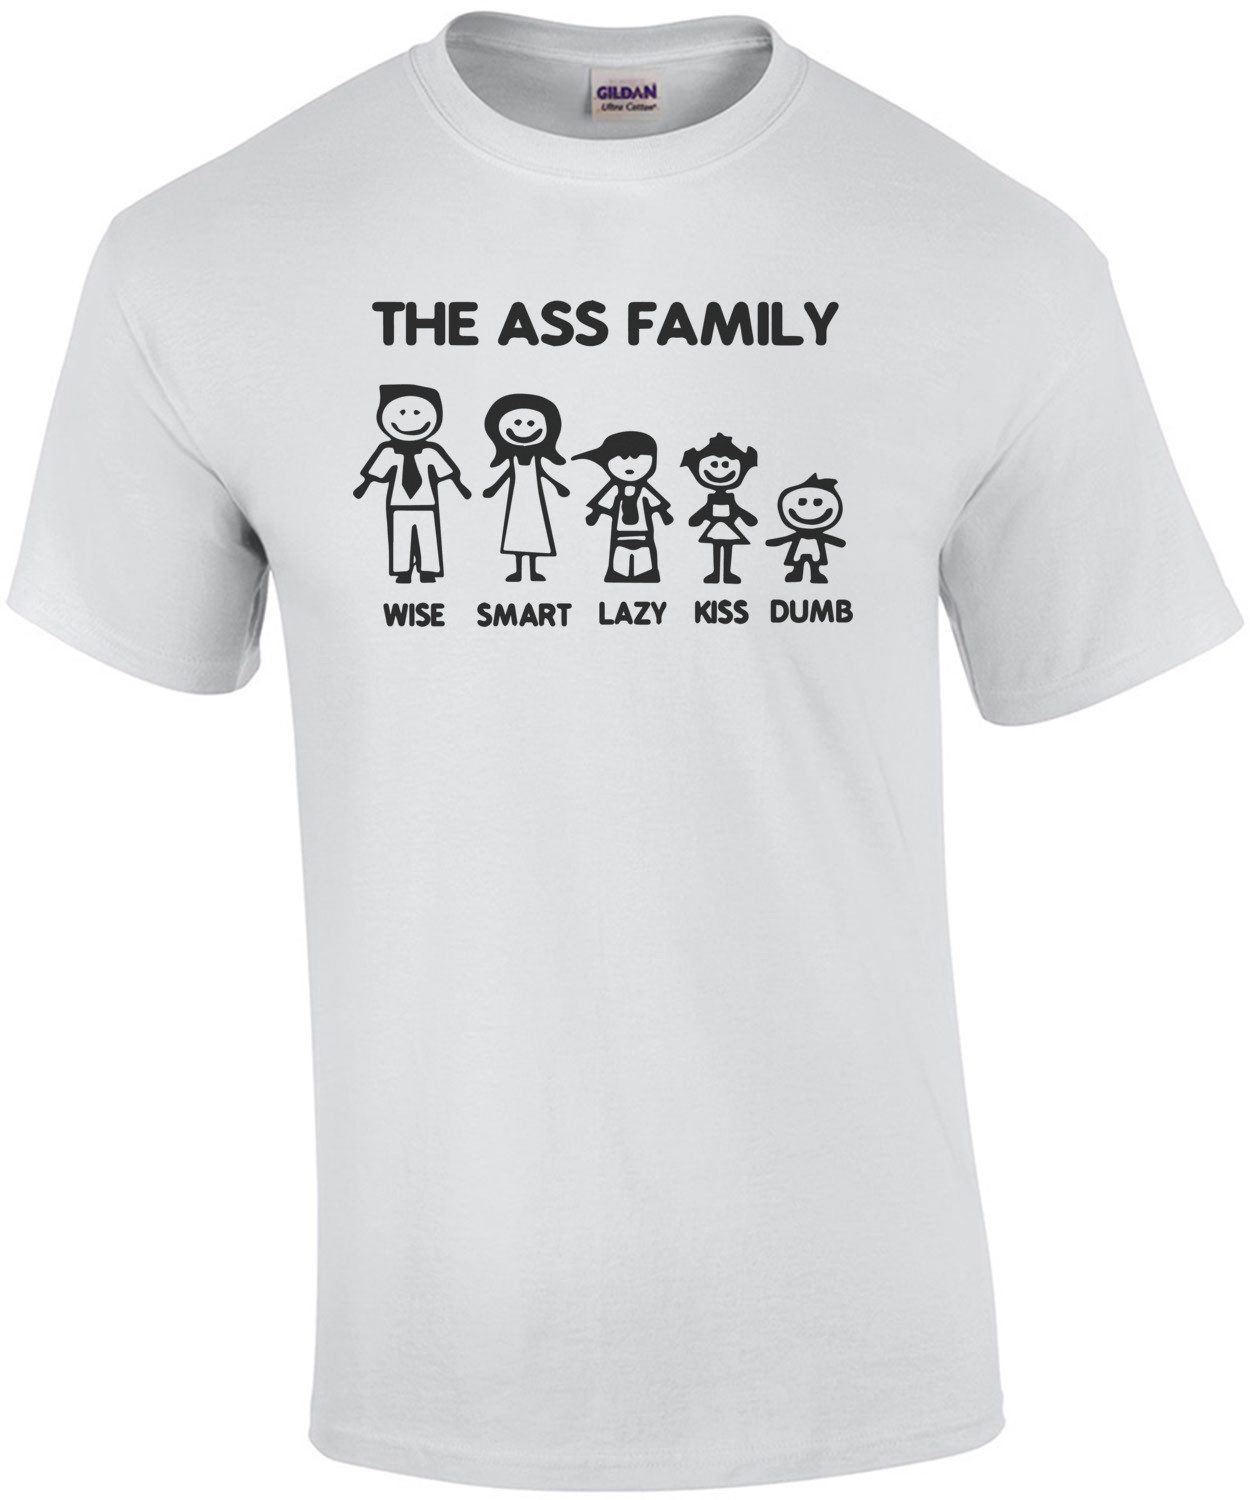 The Ass Family - Wise, Smart, Lazy, Kiss, Dumb - Funny T-Shirt